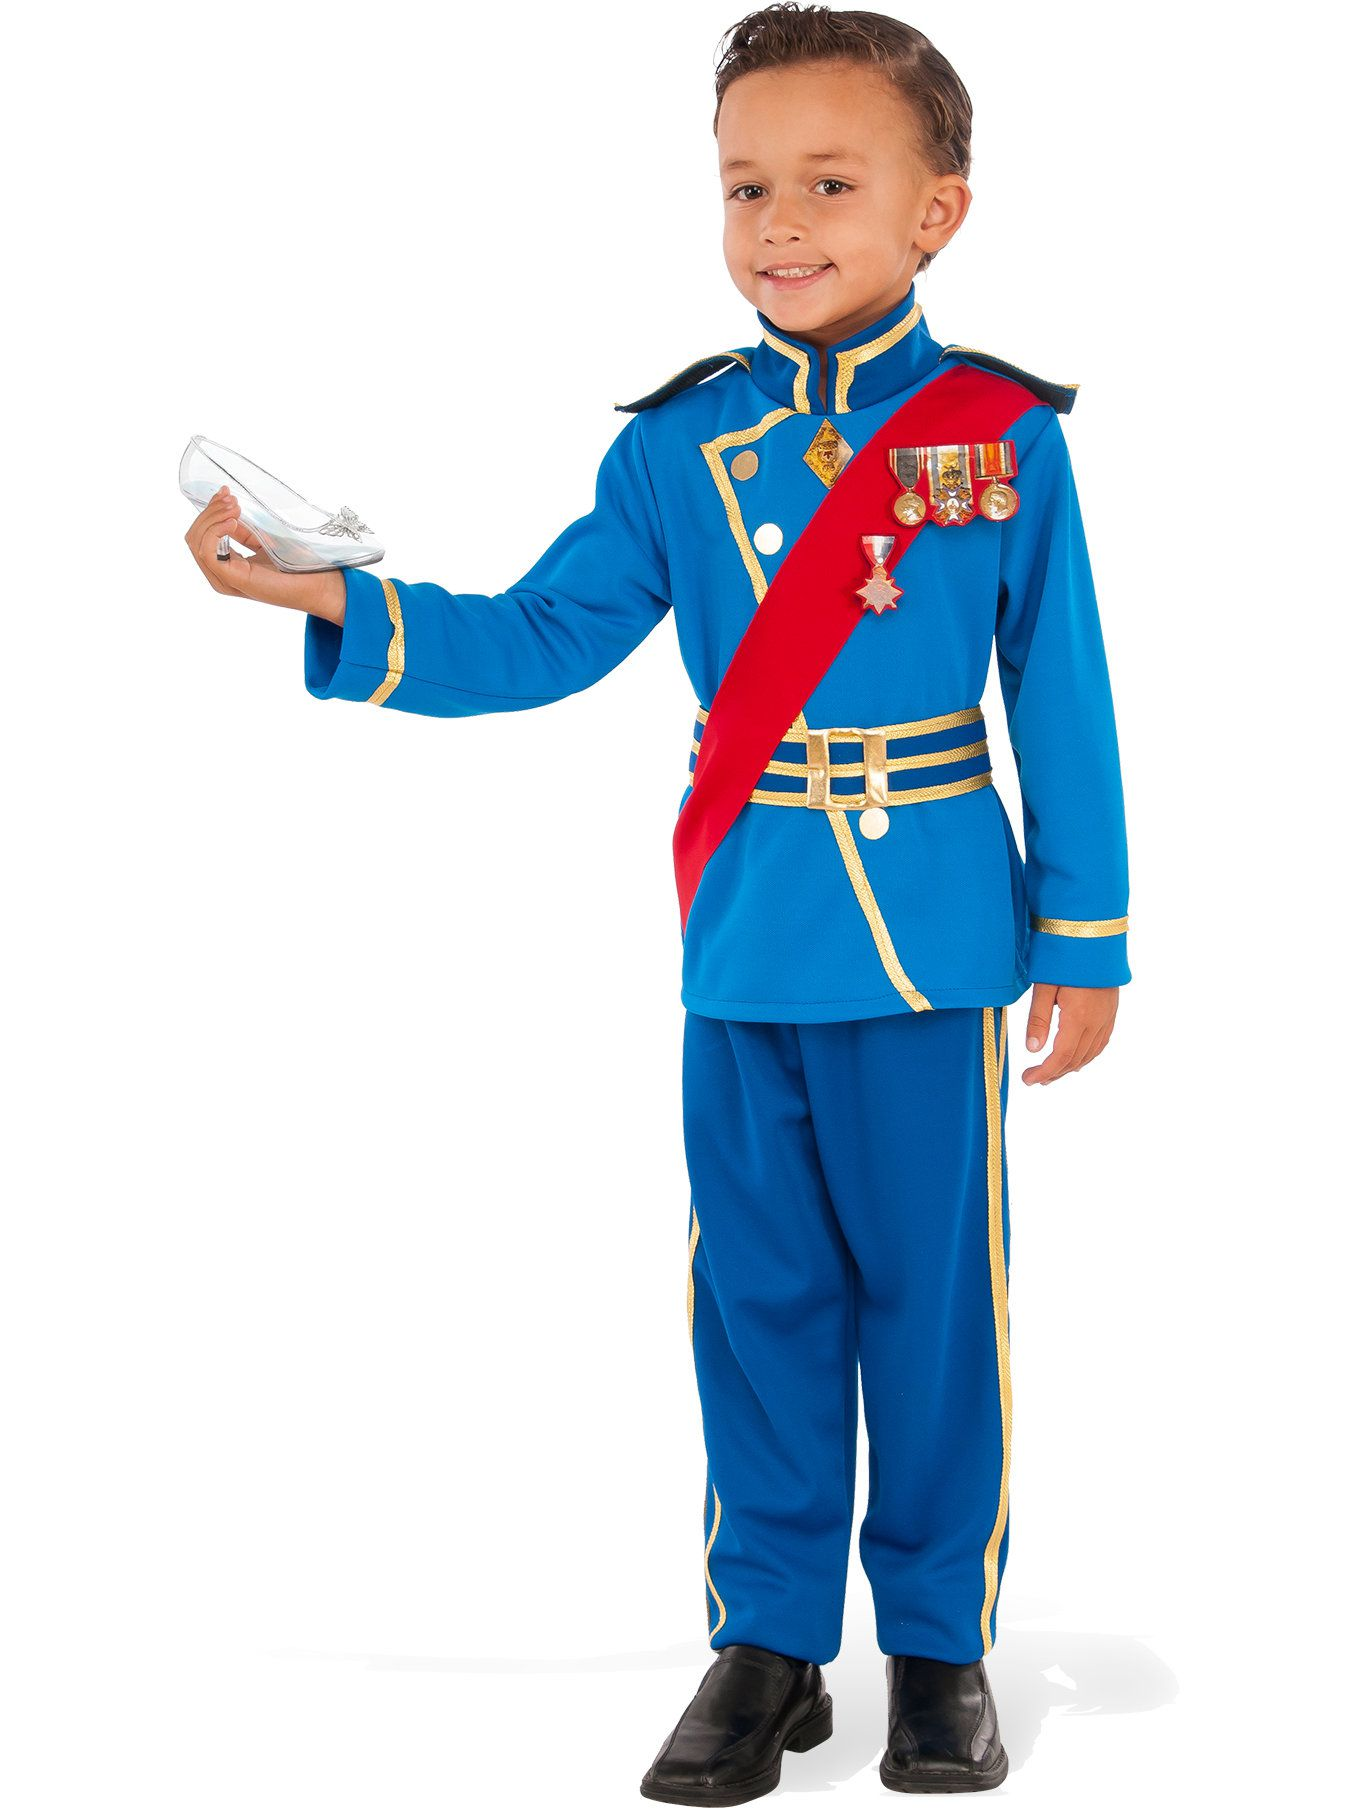 Royal Prince Costume For Children  sc 1 st  Wholesale Halloween Costumes & Royal Prince Costume For Children | Wholesale Halloween Costumes